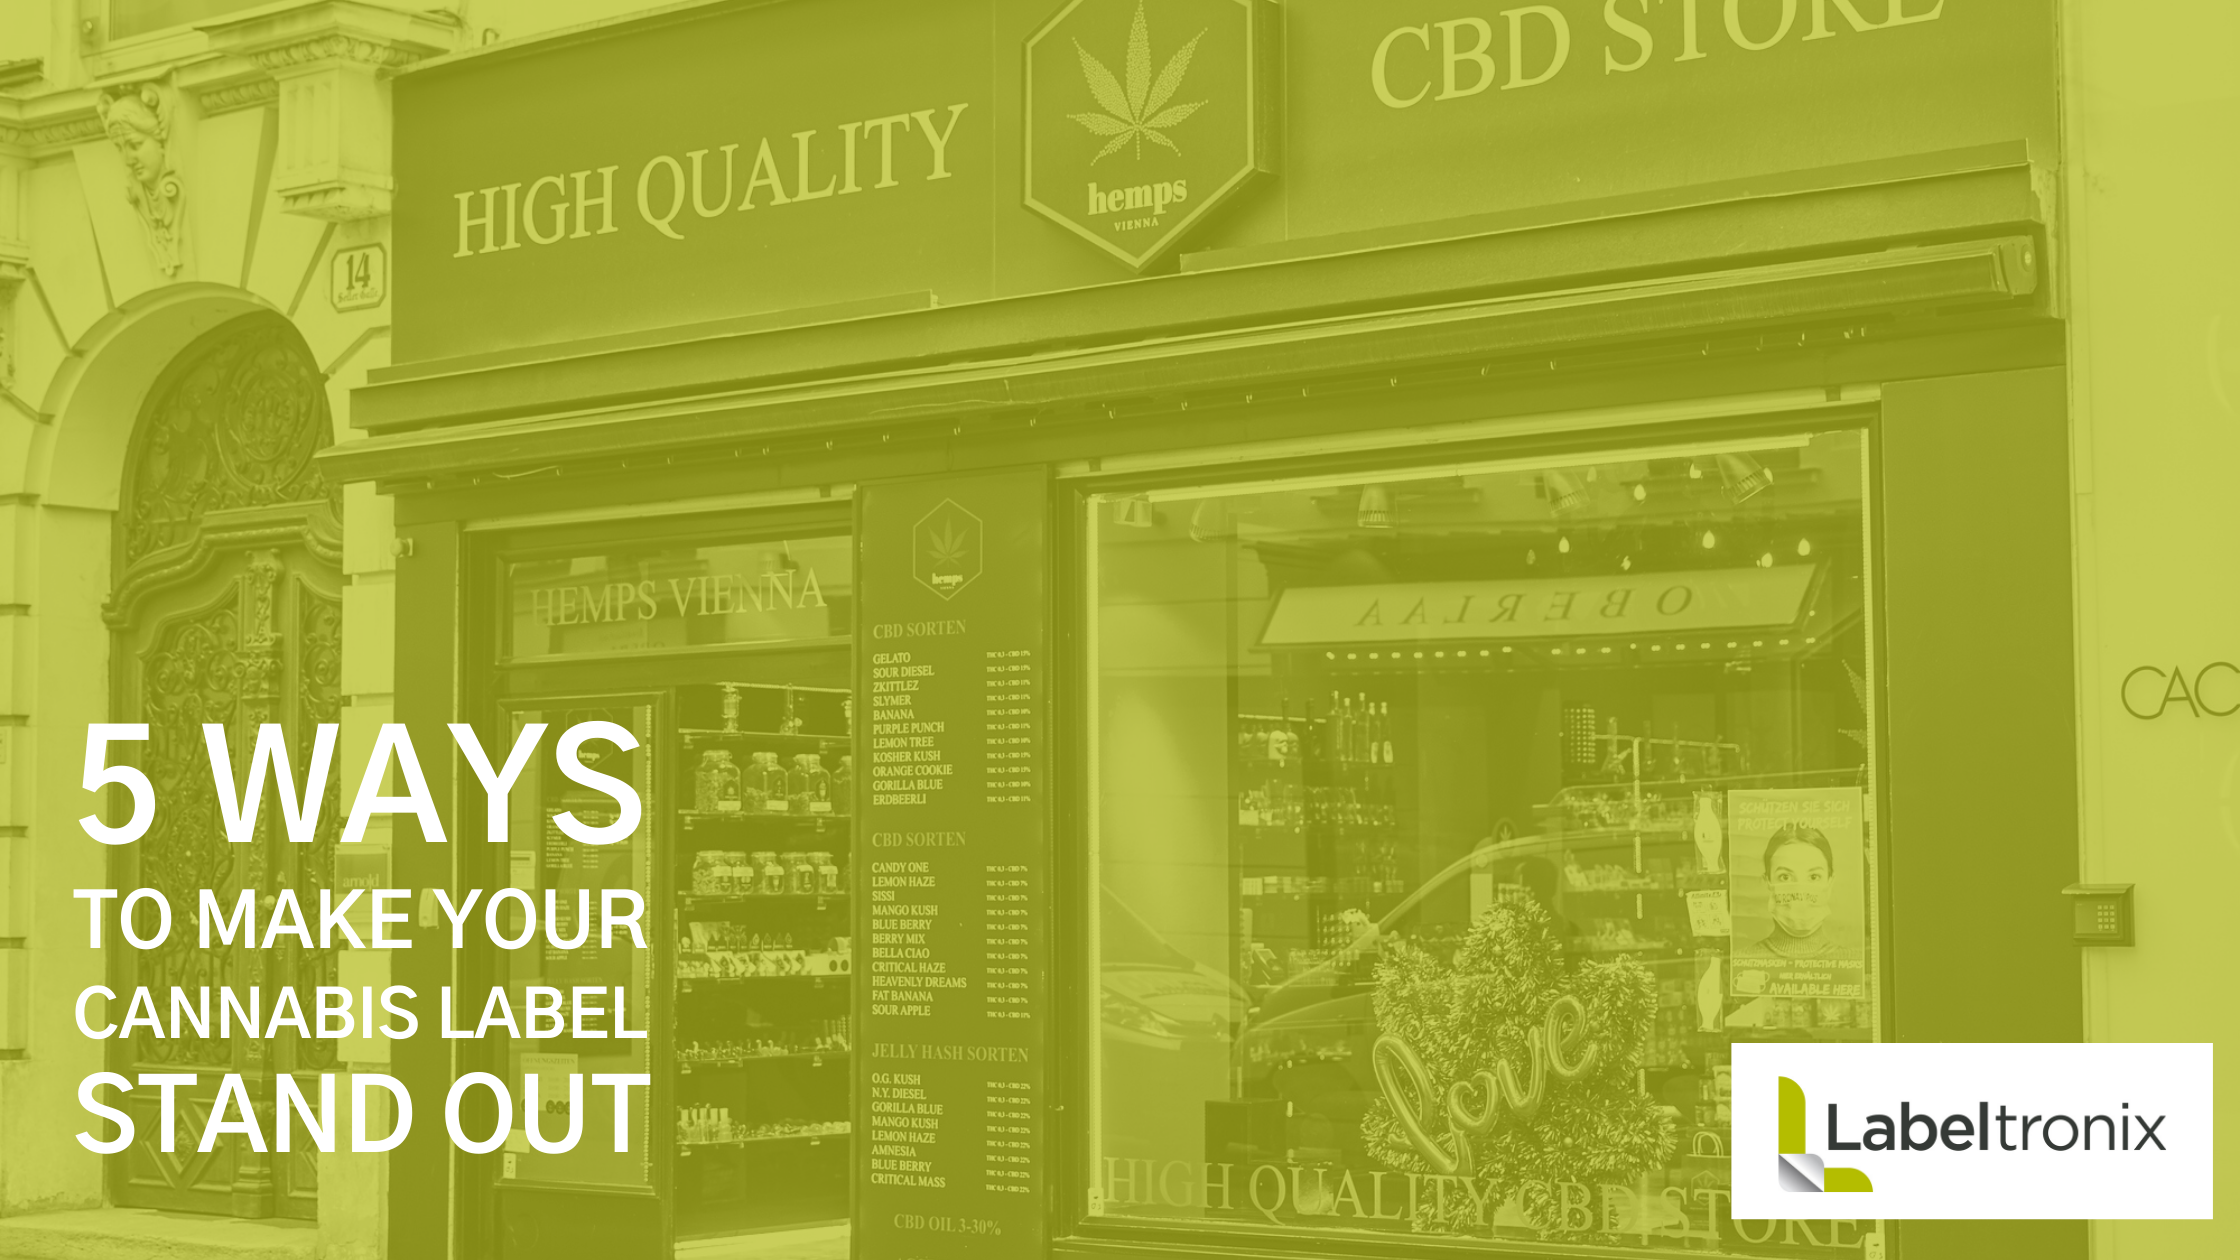 5 Ways to Make Your Cannabis Label Stand Out